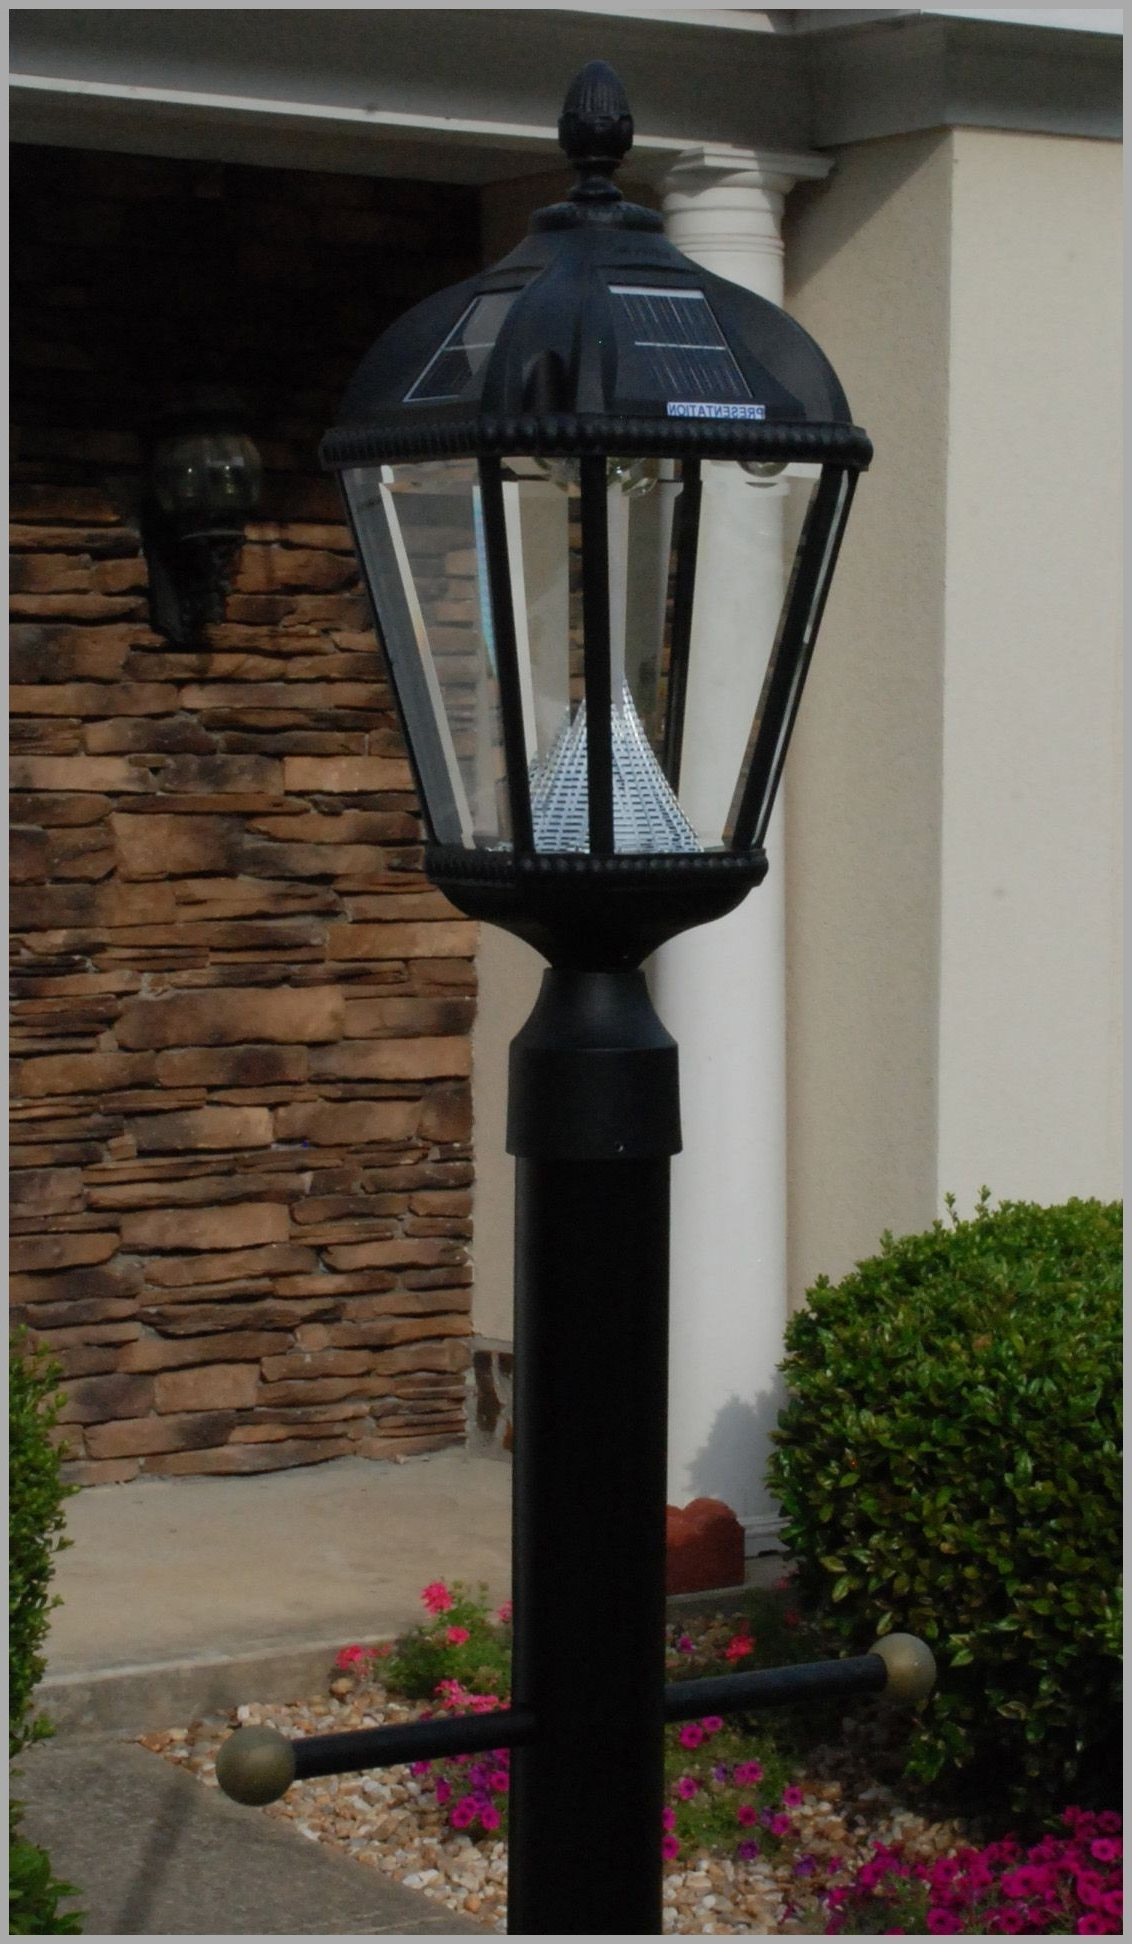 Well Known Solar Driveway Lights At Home Depot With Lighting : Driveway Street Lamps Home Depot Gas Solar Lamp Post (View 10 of 20)